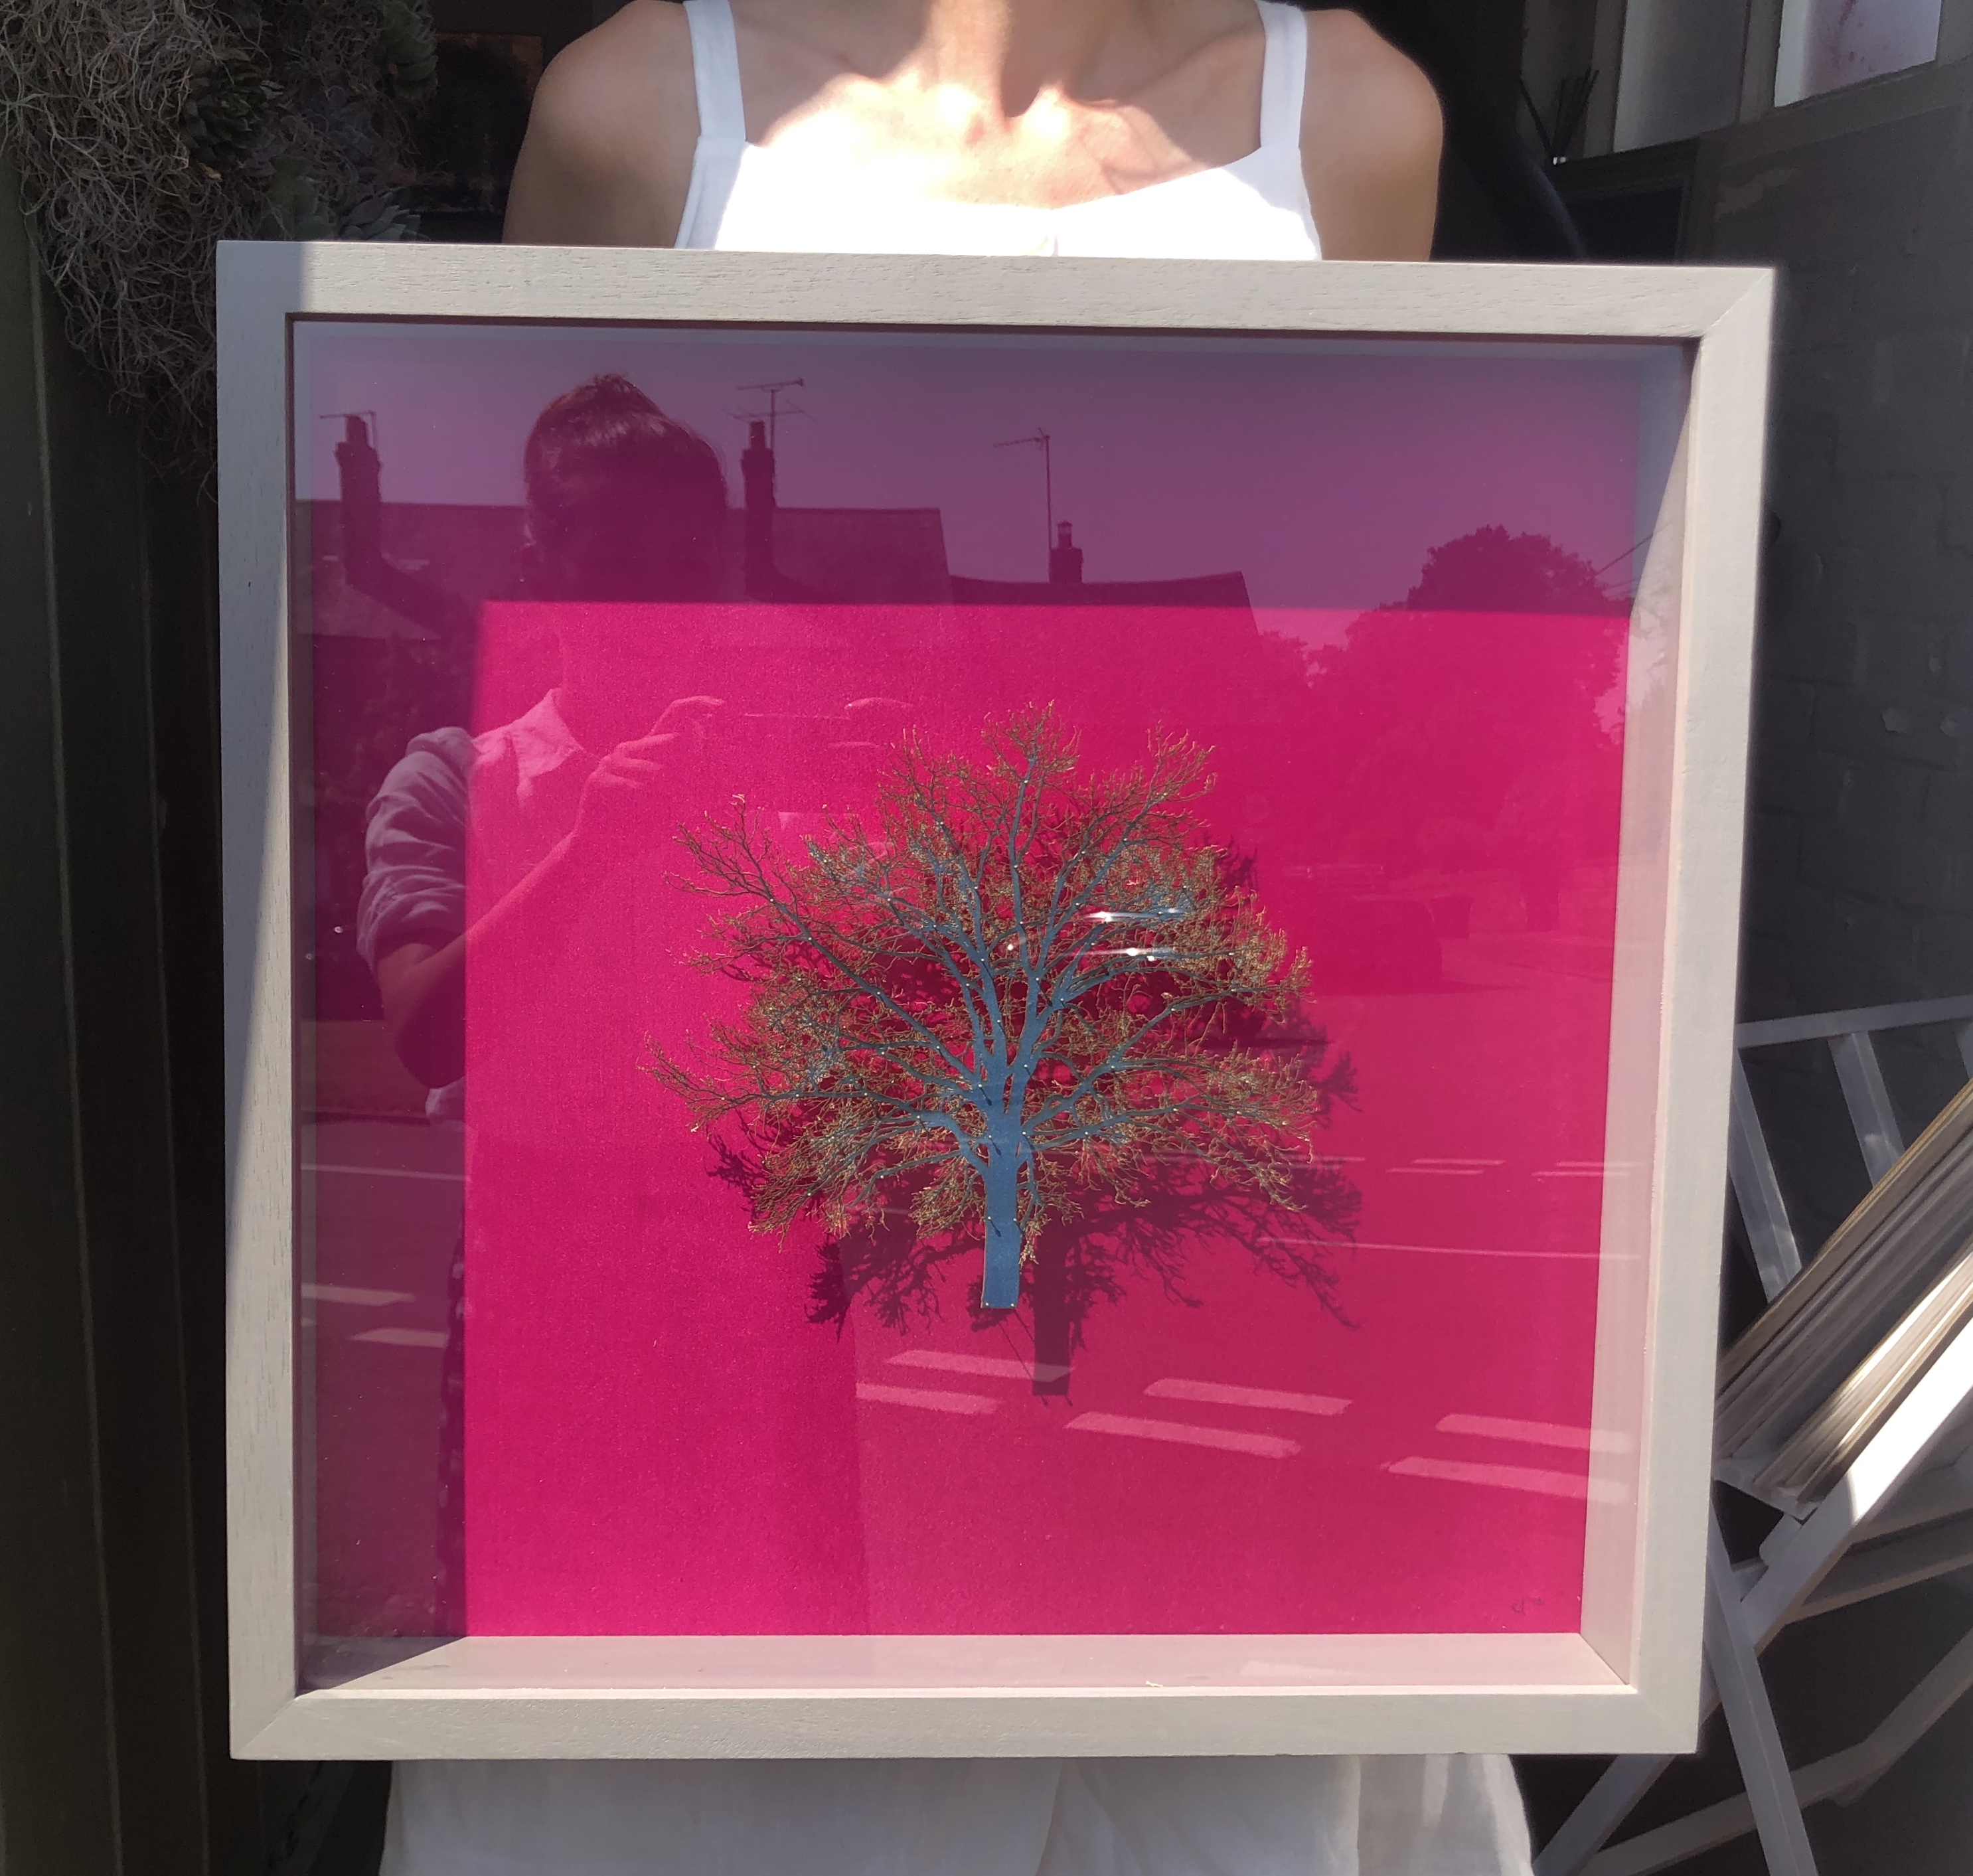 Emma Levine art for sale. Hot pink background with bright green tree sculpture framed and scaled.